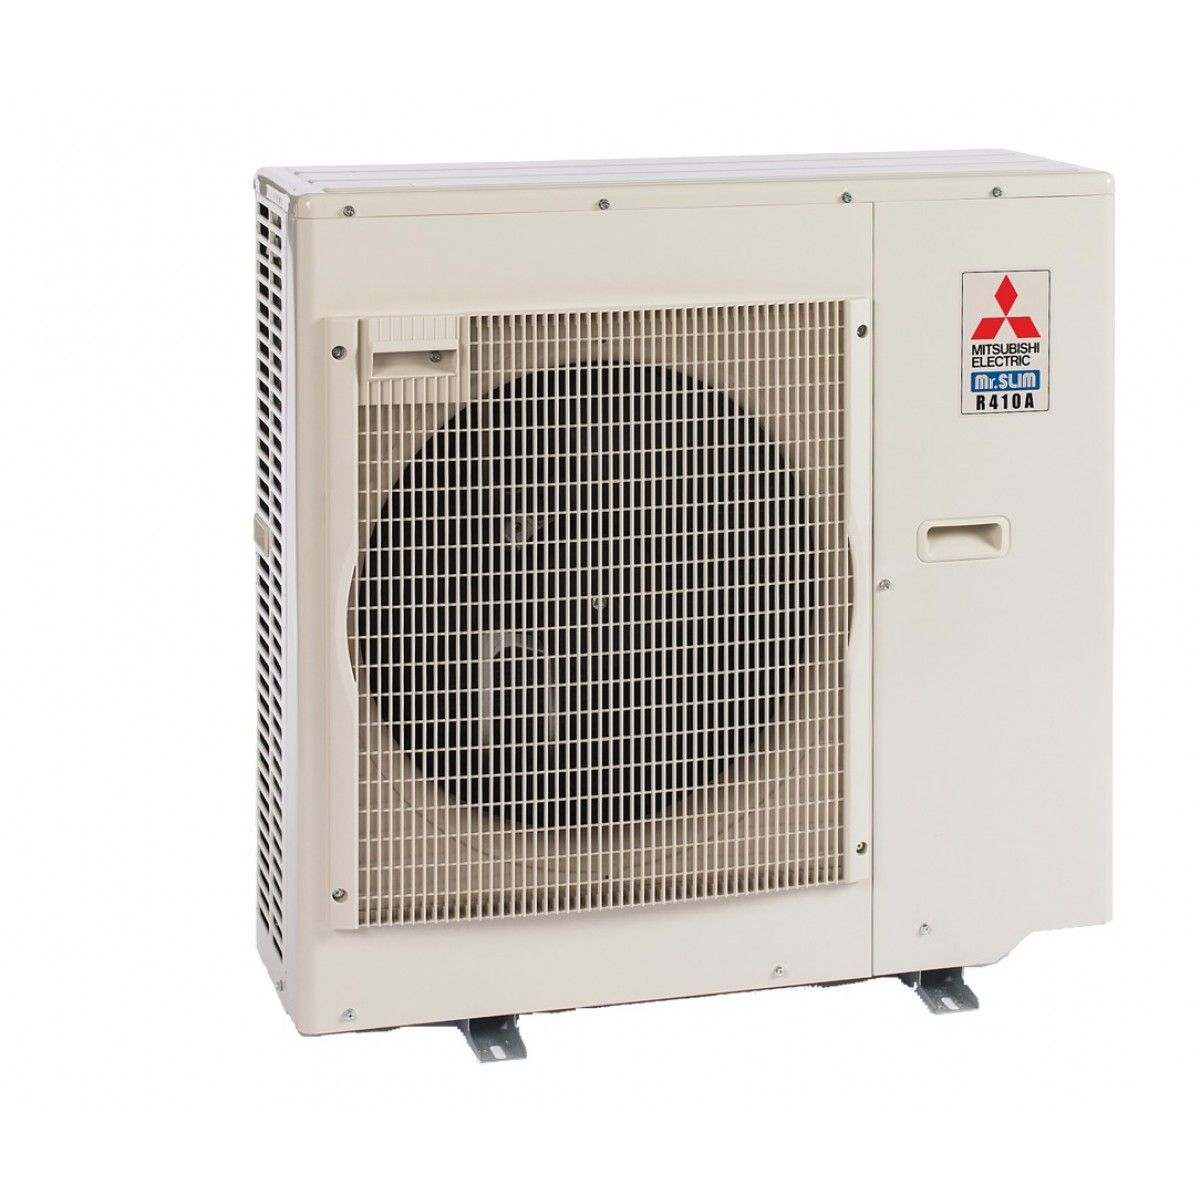 36k btu mitsubishi puza outdoor unit in ductless ac Ductless ac